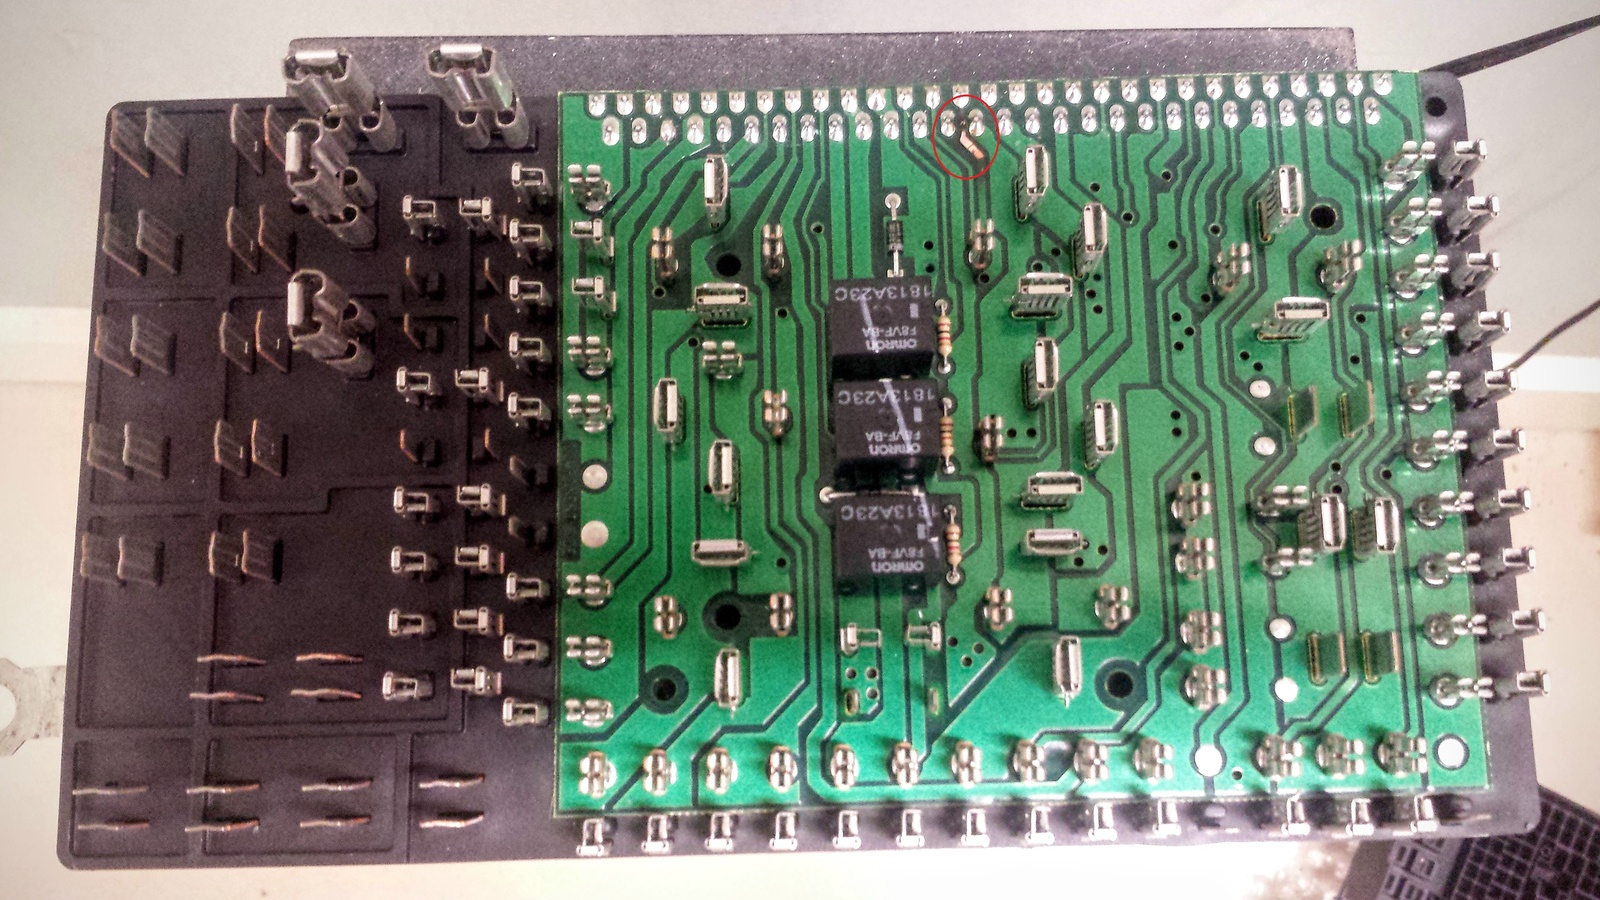 Marvelous 2000 Ford F 250 Super Duty 7 3 Powerstroke Fuse Diagram Wiring Library Wiring Cloud Intelaidewilluminateatxorg